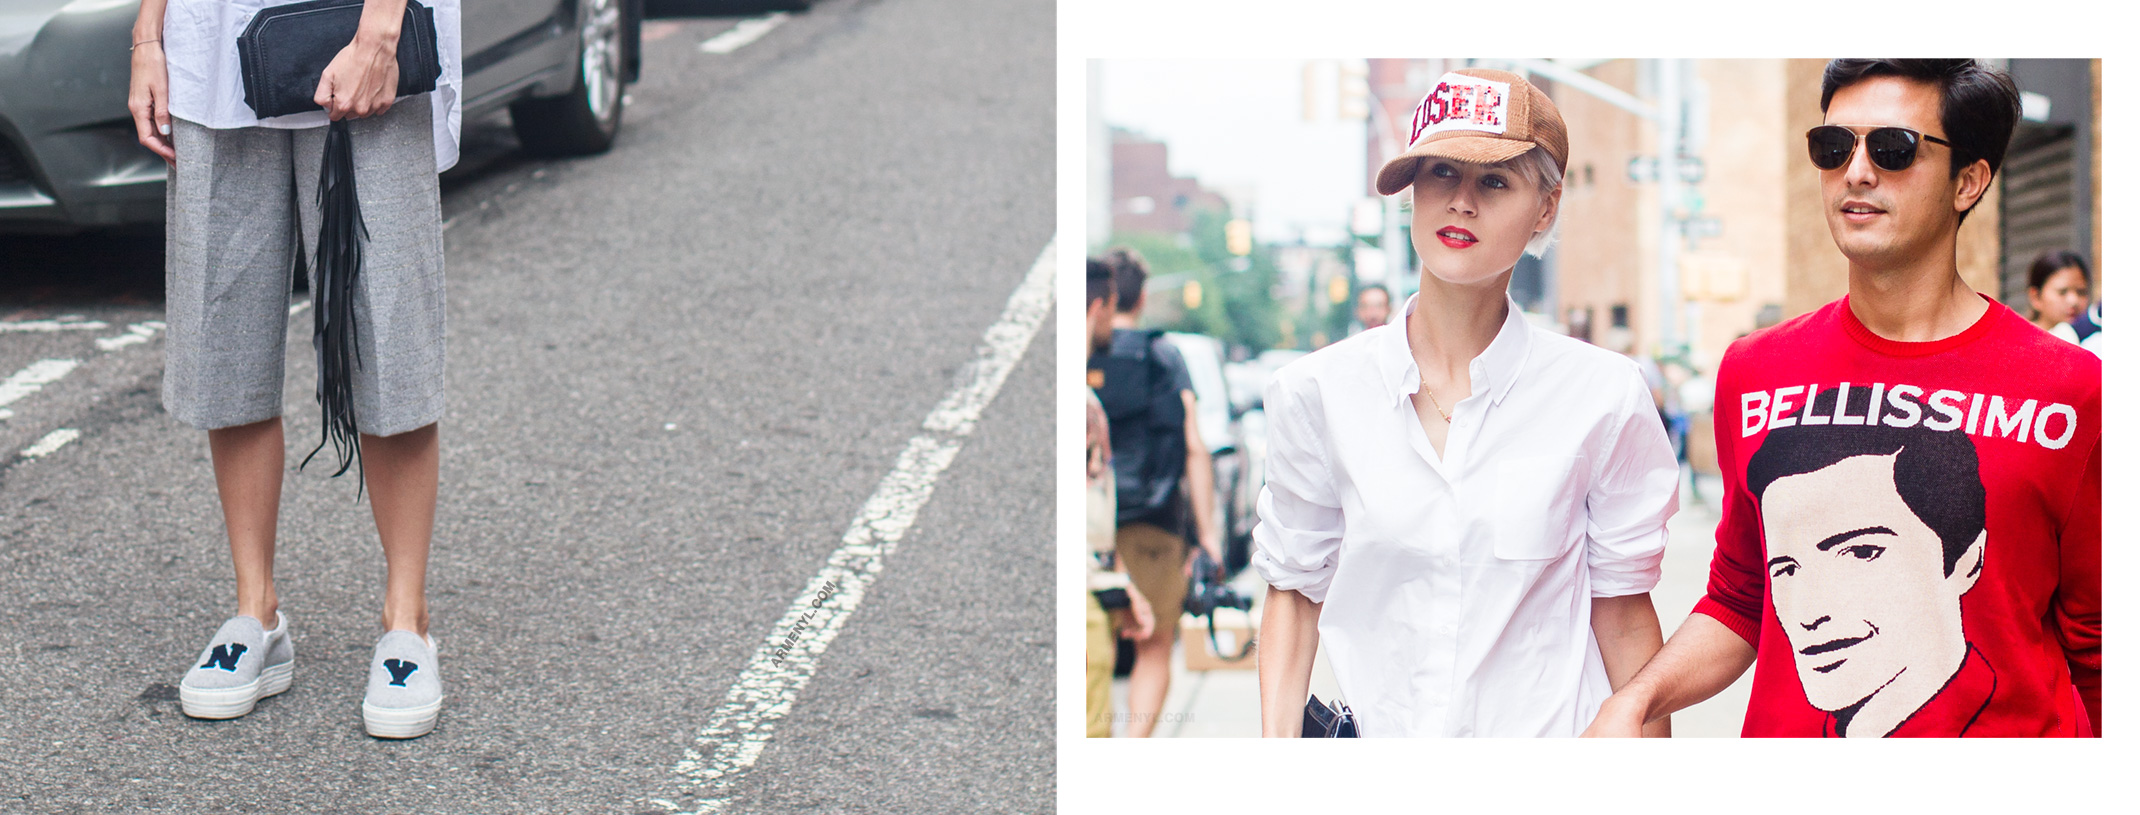 Street style, fashion blogger Linda Tol shot and edited by Armenyl